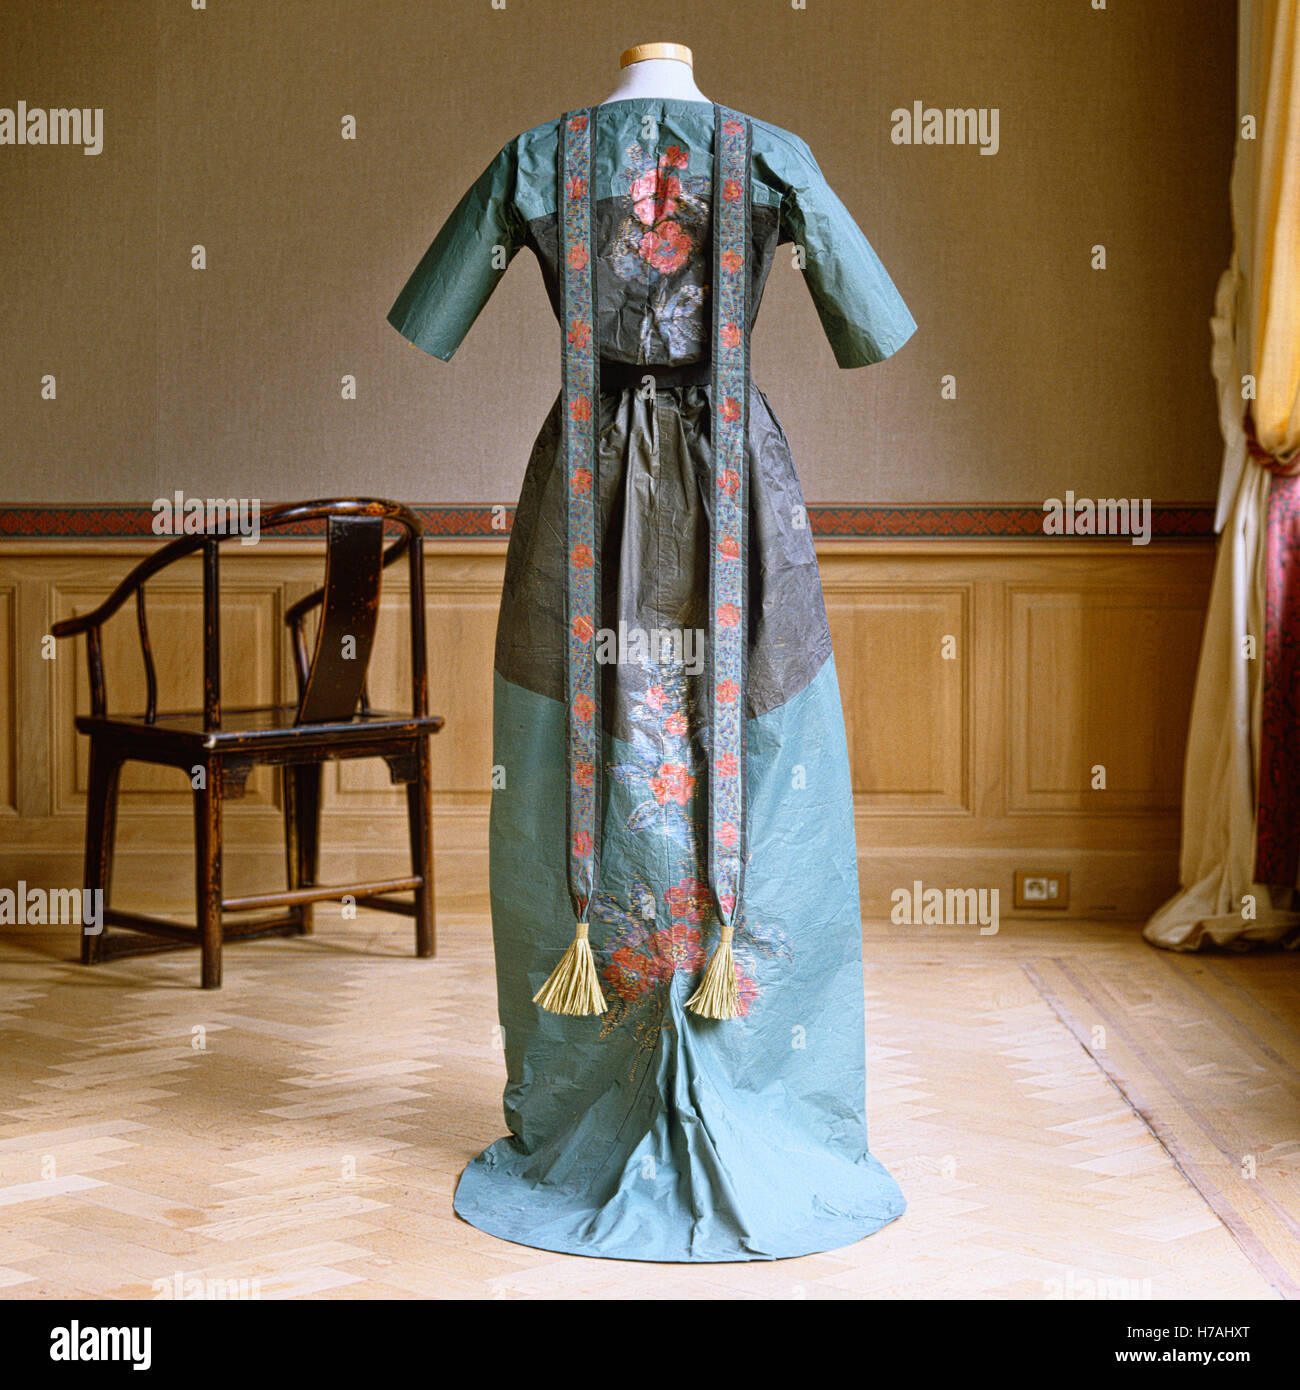 Blue and grey evening dress with floral design on historical replica paper dress by Isabelle de Borchgrave - Stock Image